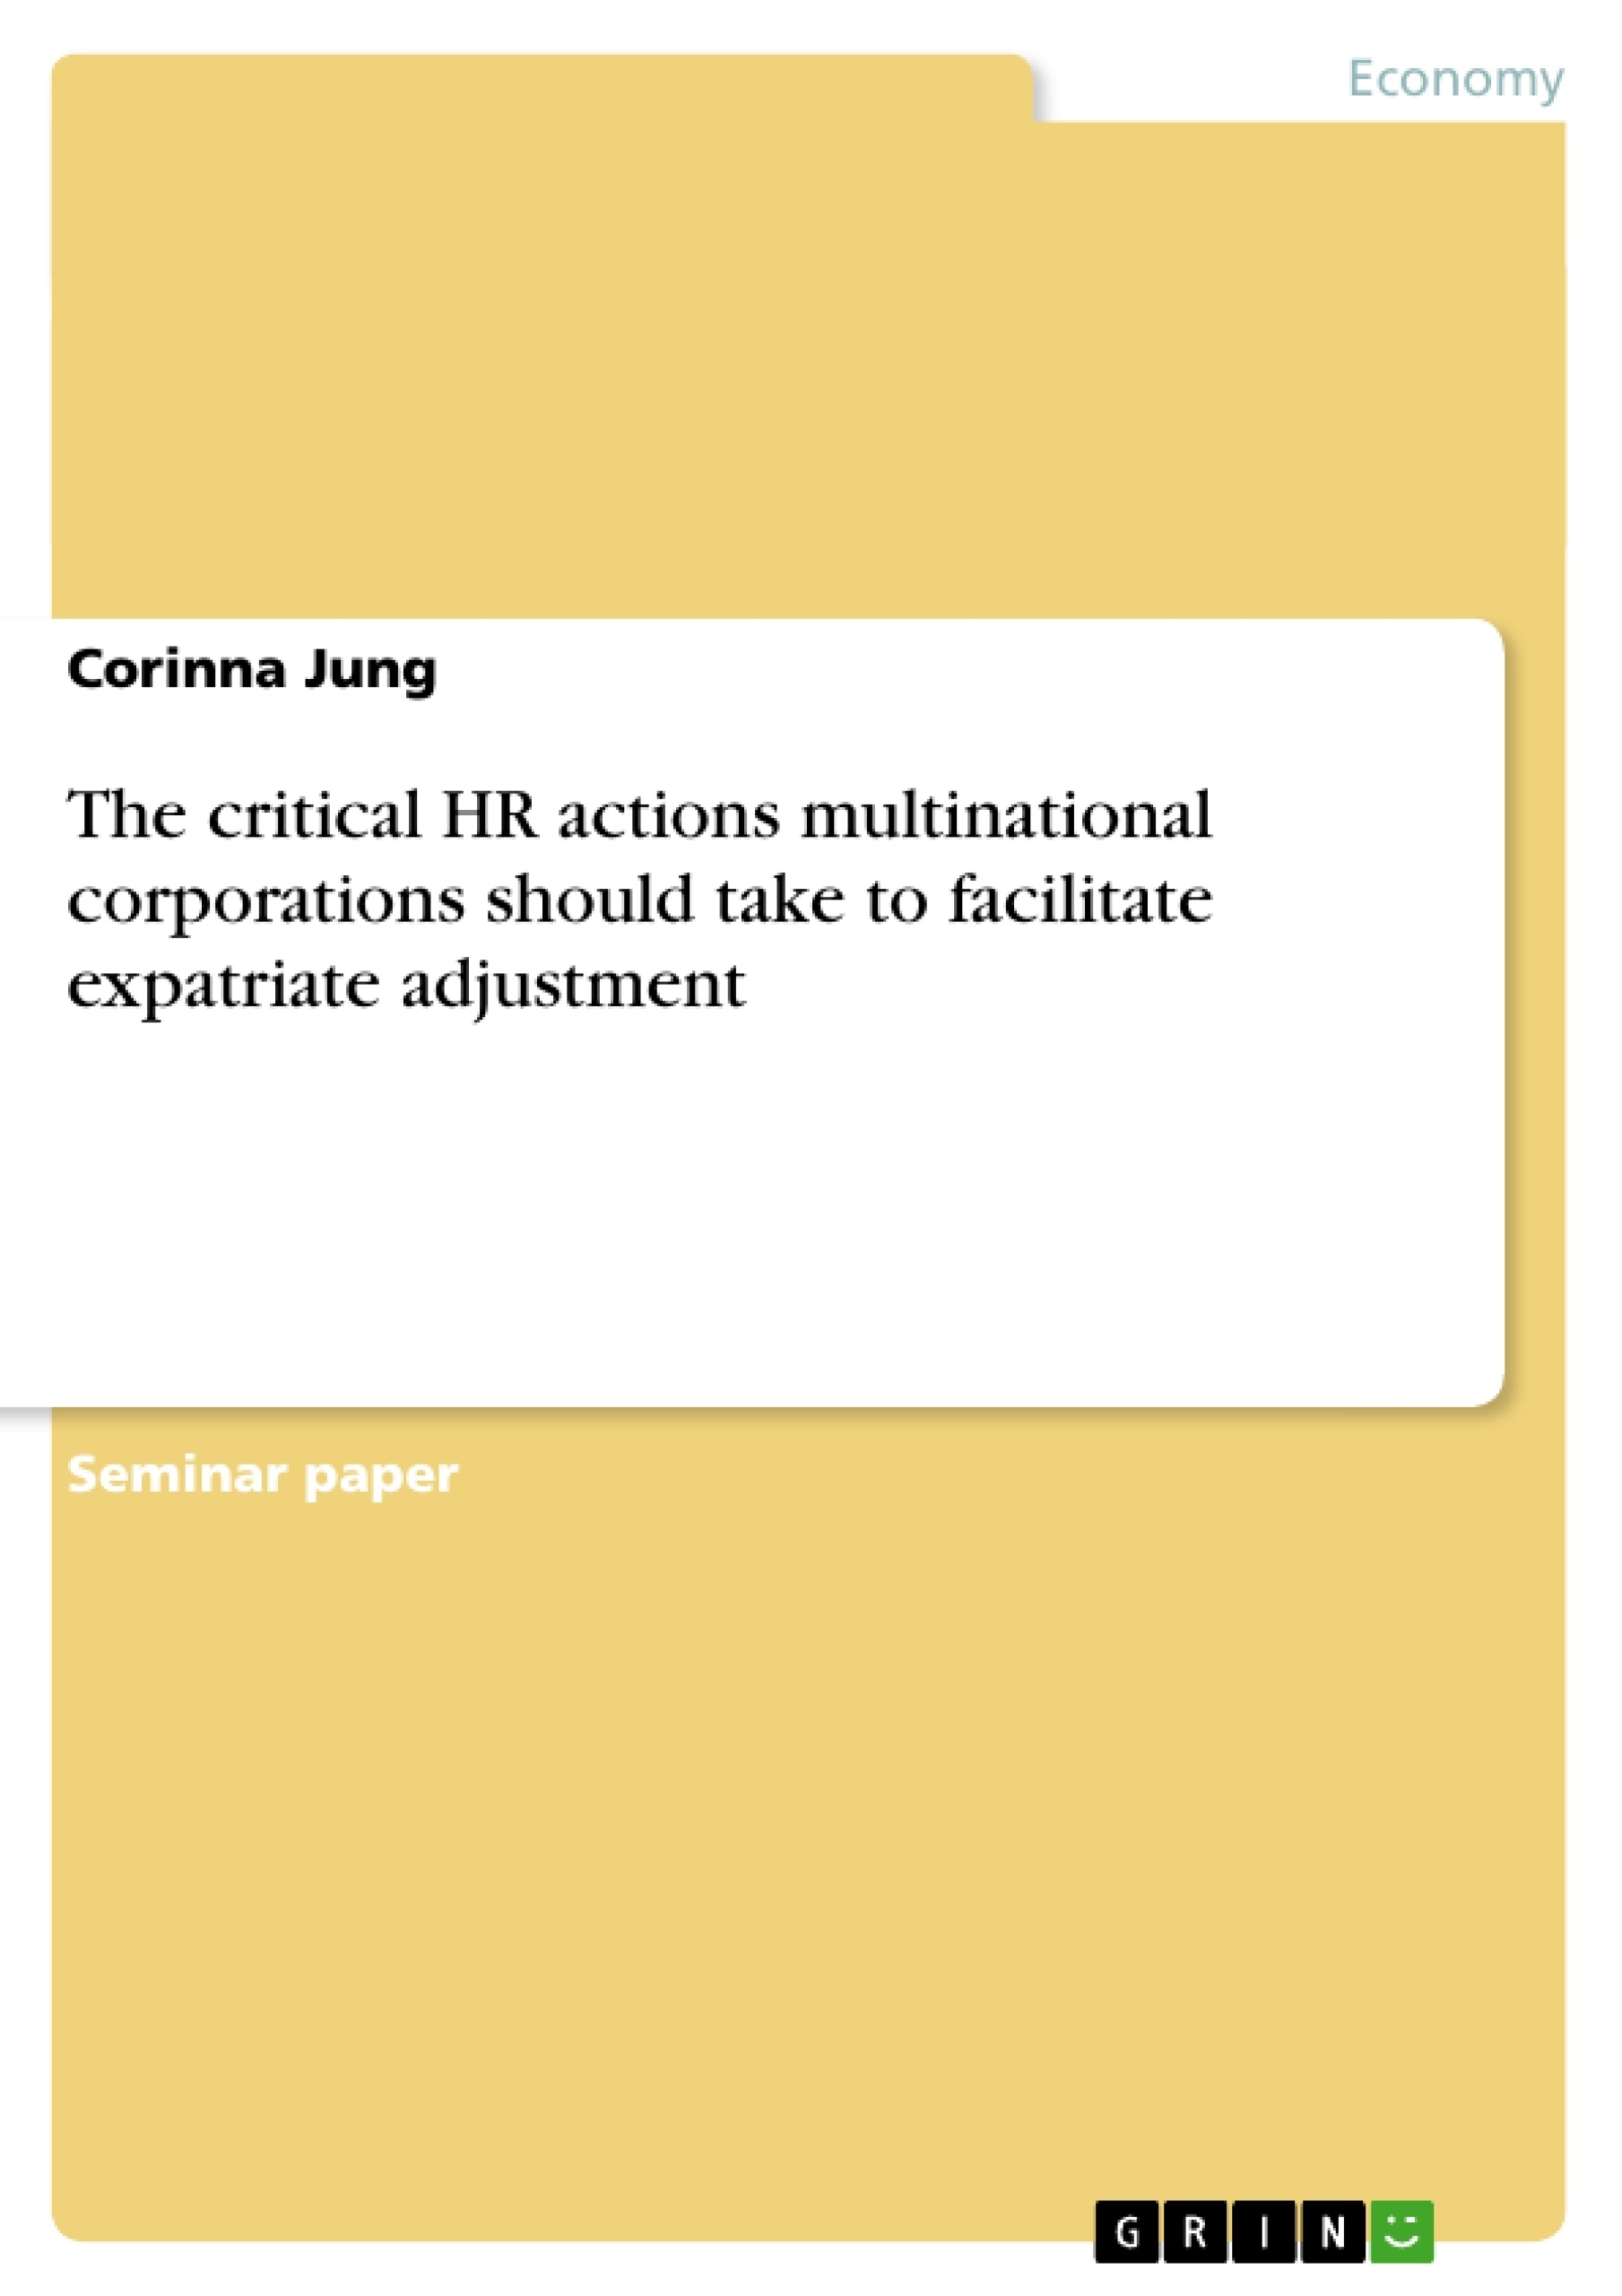 Title: The critical HR actions multinational corporations should  take to facilitate expatriate adjustment